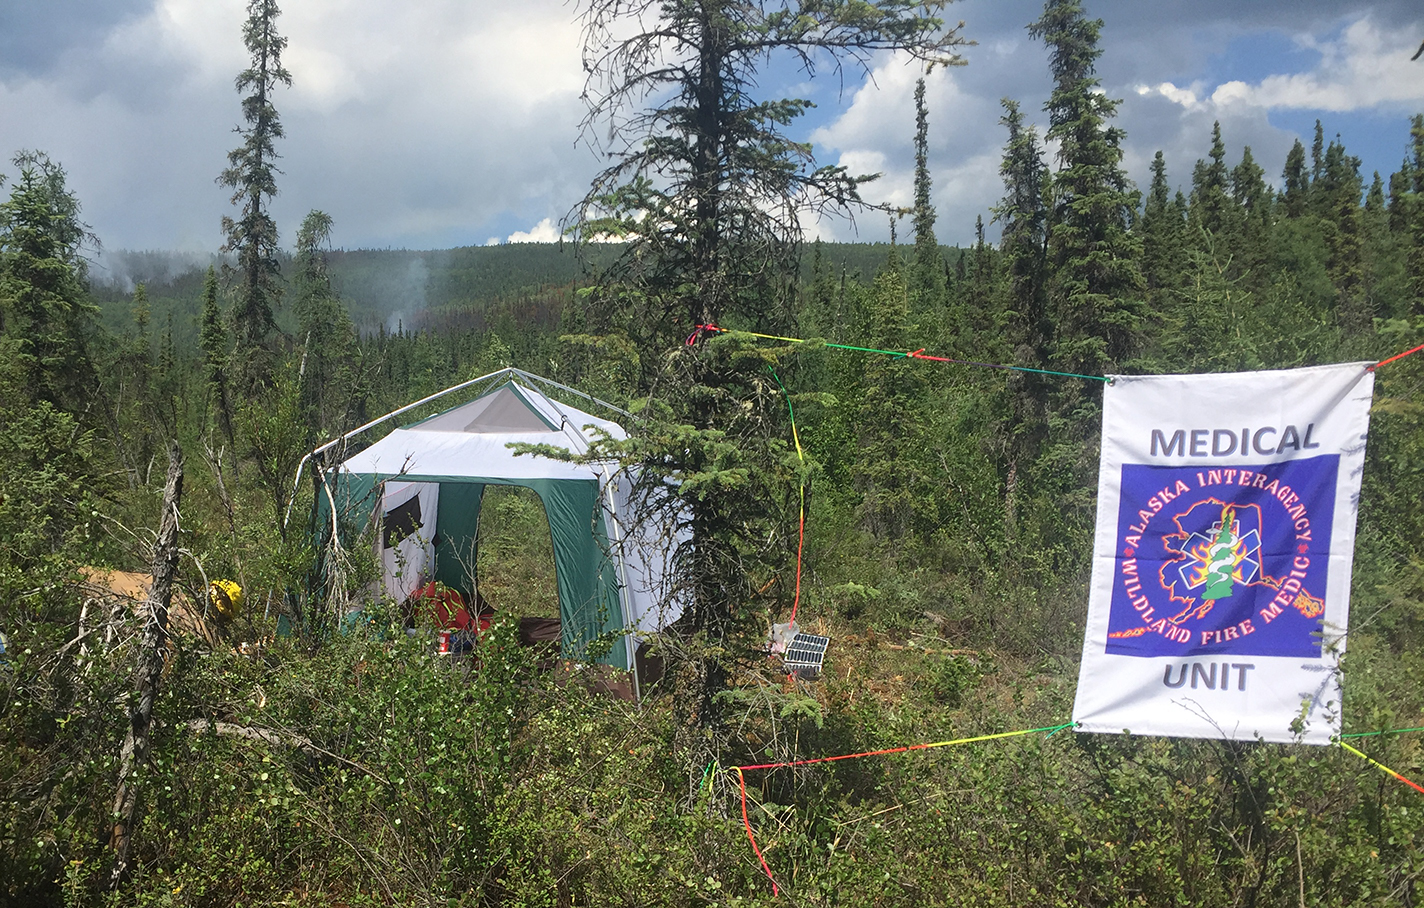 Photo of a Fire Medic Tent on the Caribou Creek Fire in Two Rivers, Alaska on June 20, 2019.